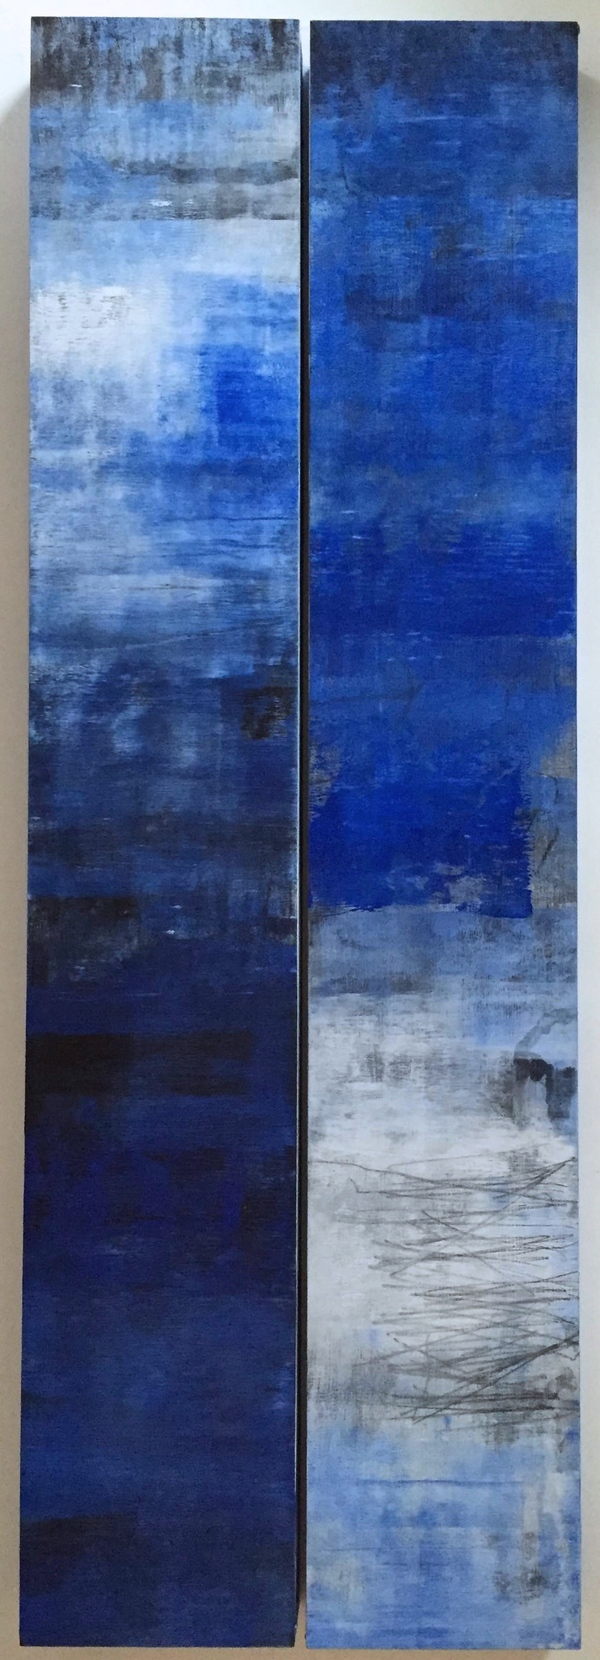 PETER ROUX misc abstraction oil, charcoal on two panels